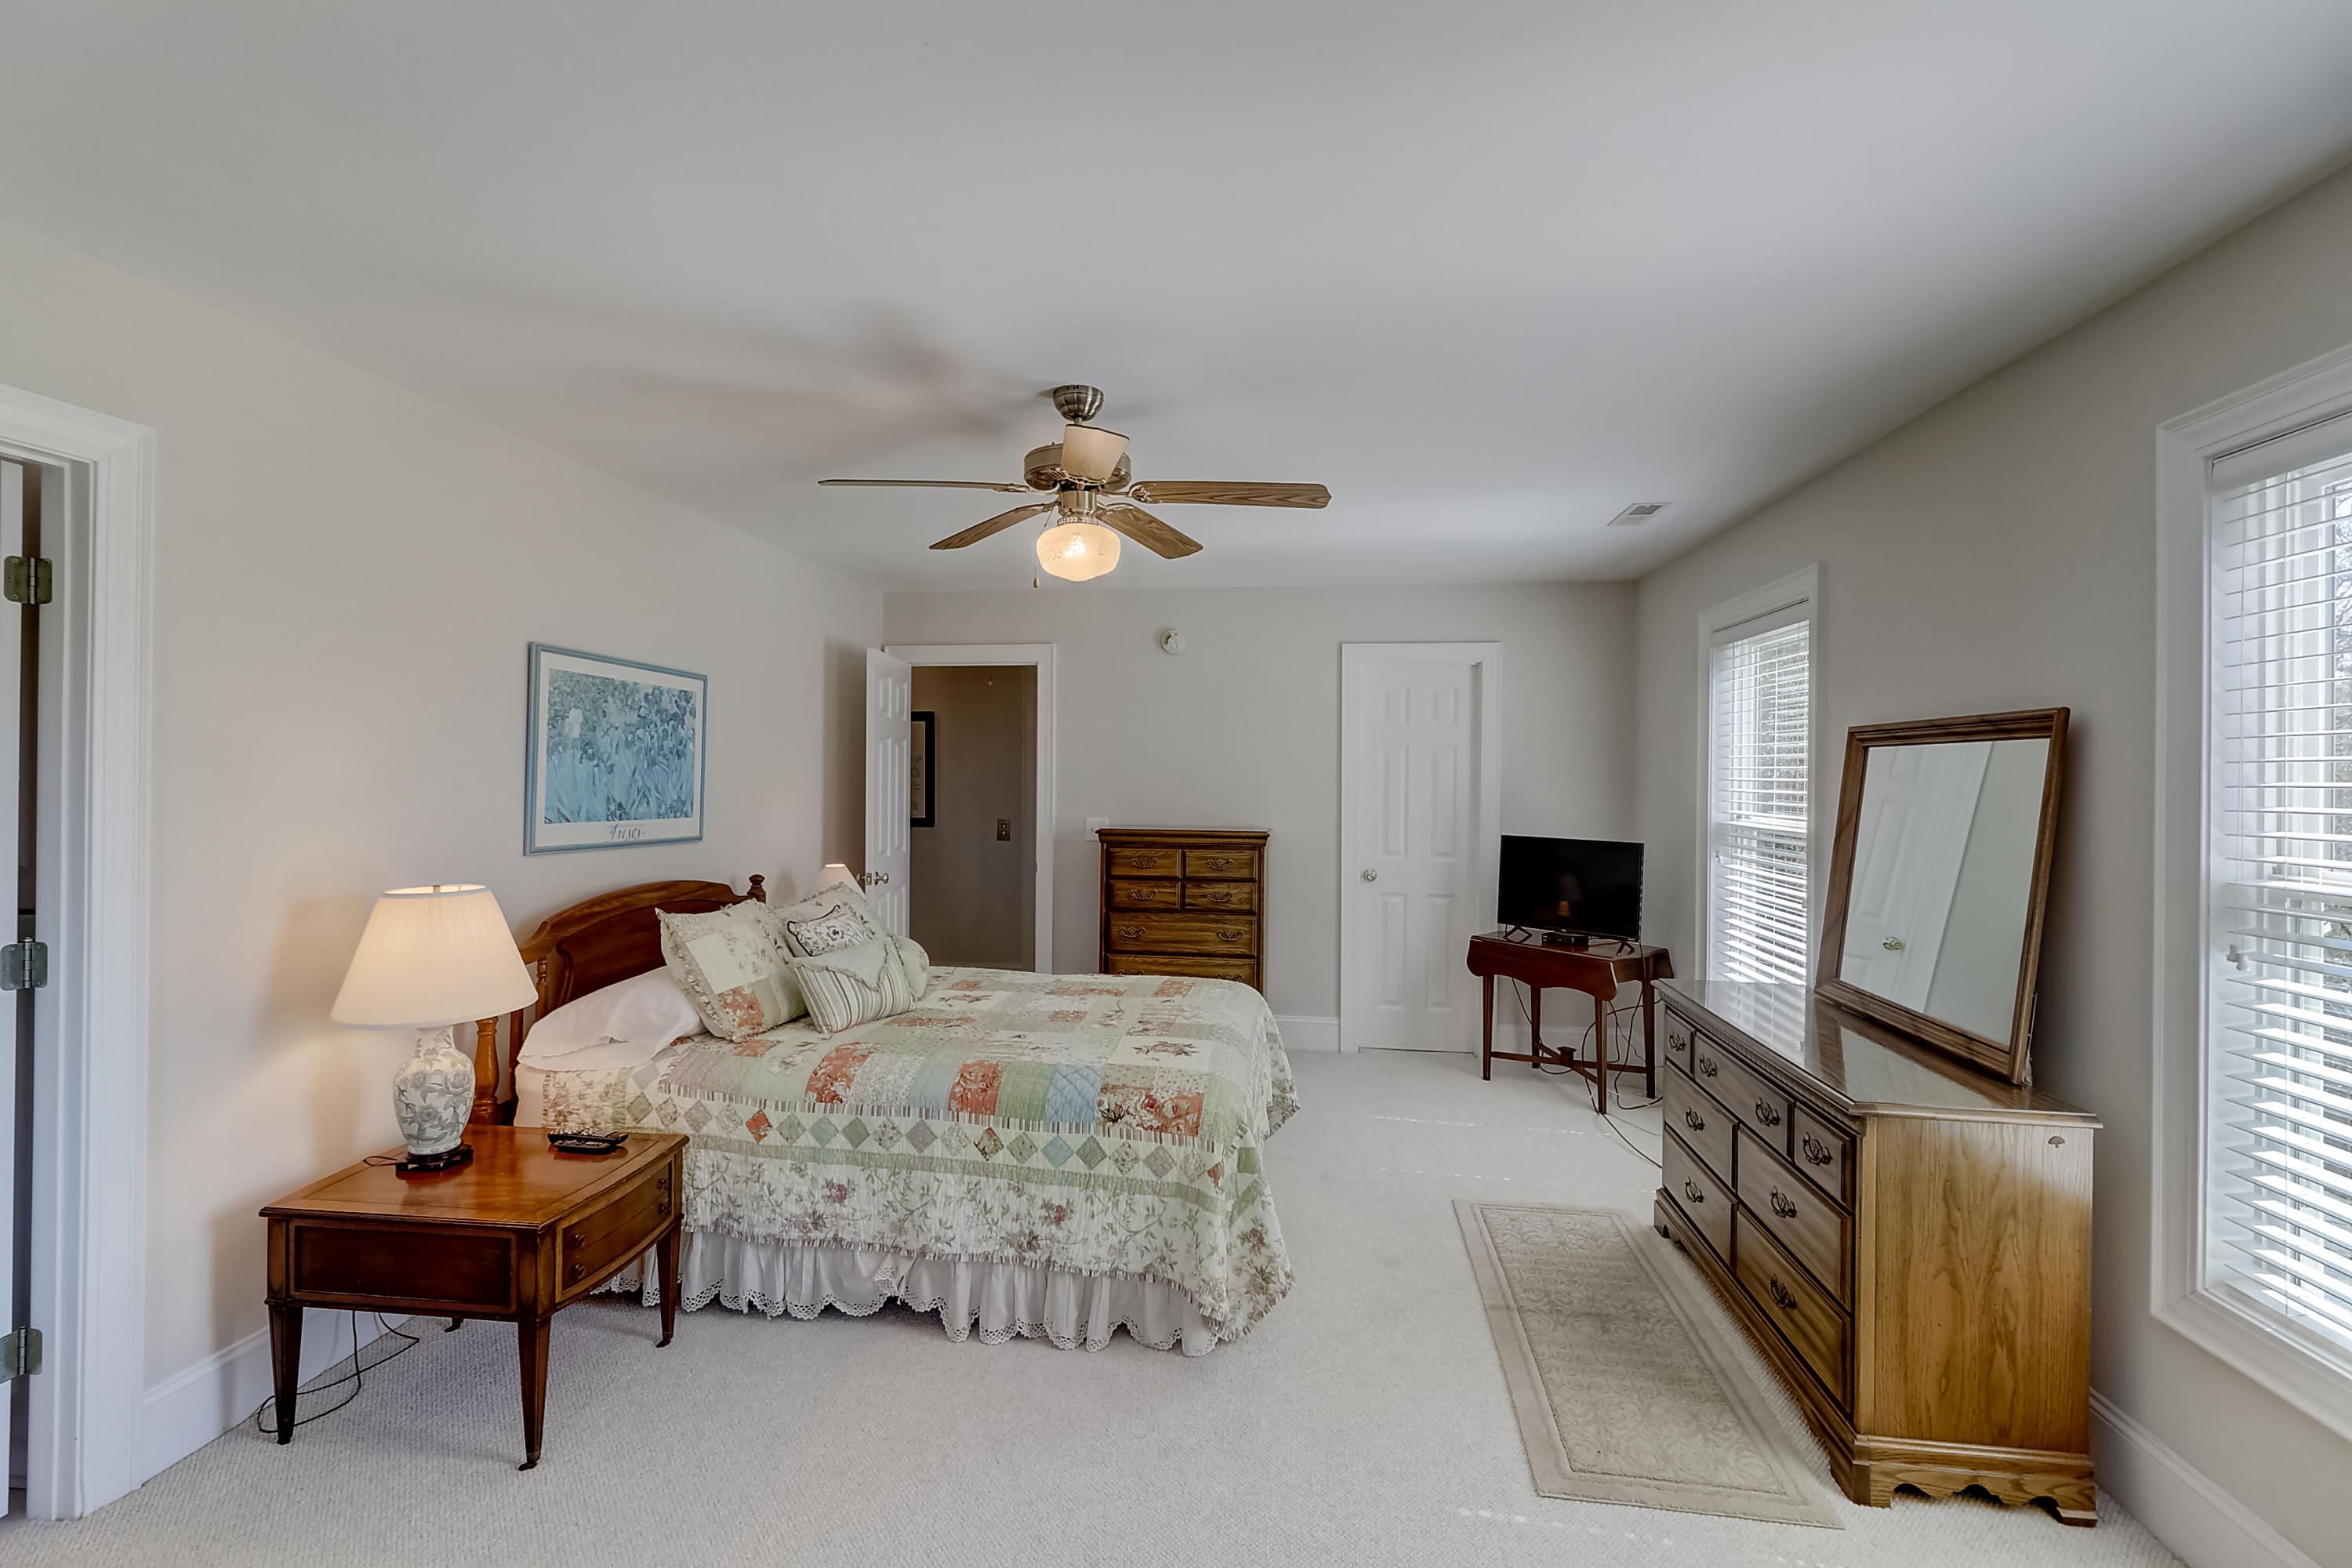 Stratton Place Homes For Sale - 1494 Stratton, Mount Pleasant, SC - 67